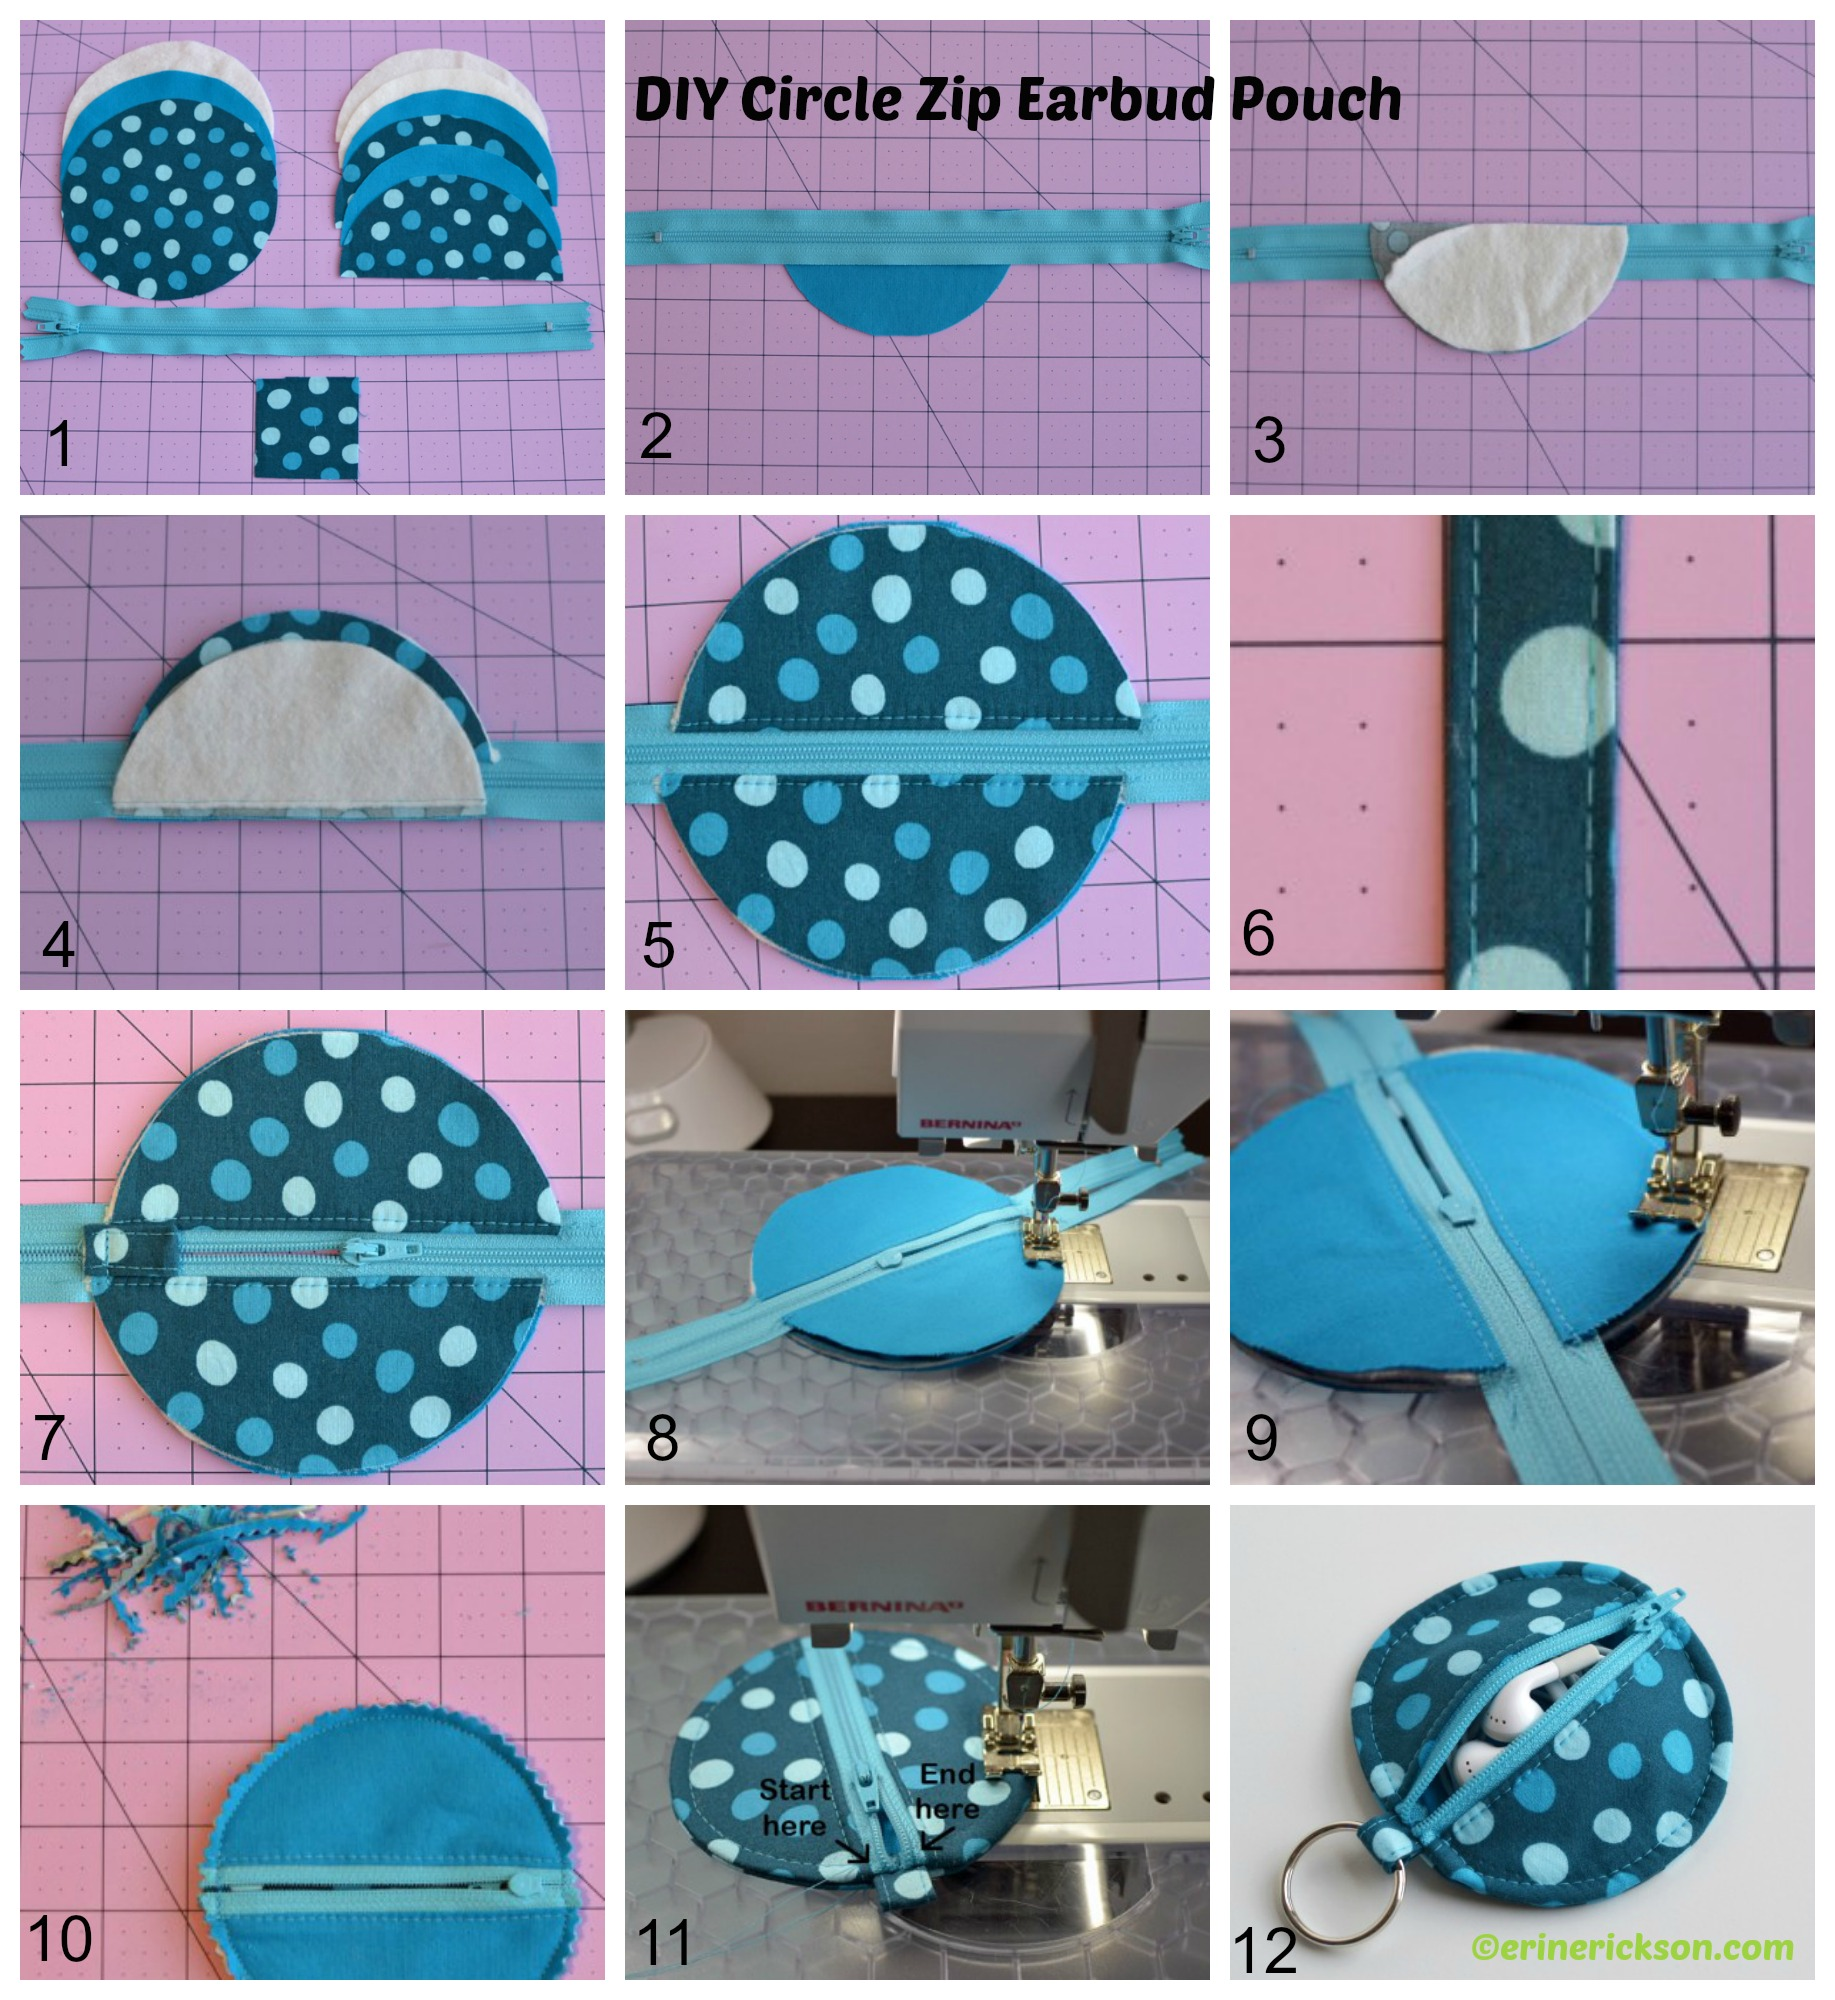 How to make a Circle Zip Earbud Pouch